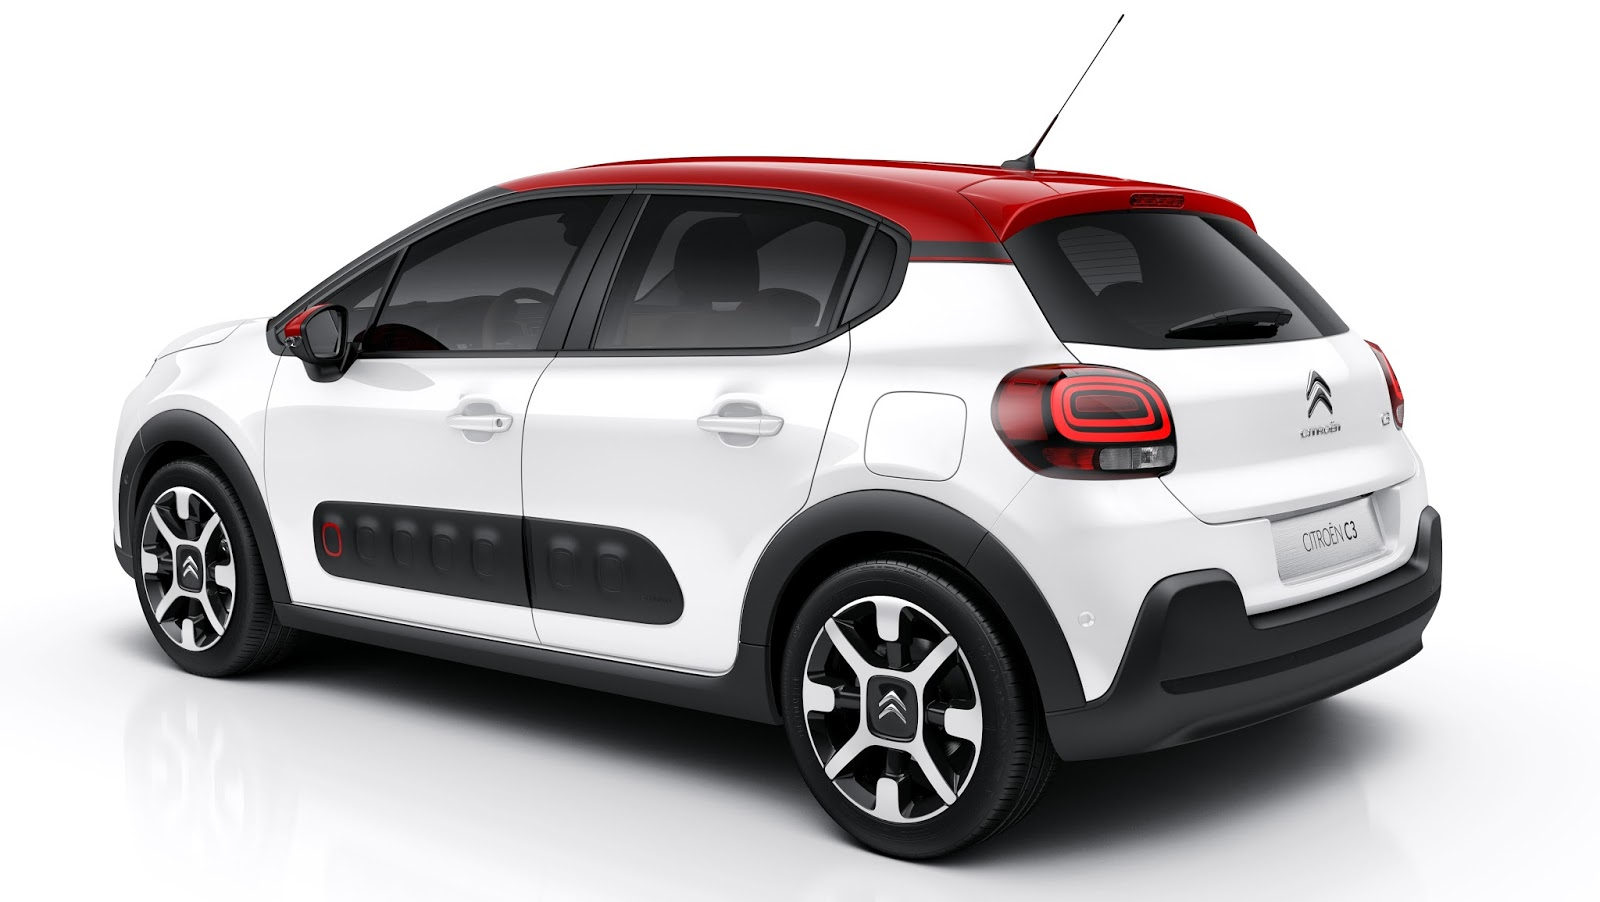 2017 citroen c3 leaks ahead of official reveal looks like. Black Bedroom Furniture Sets. Home Design Ideas